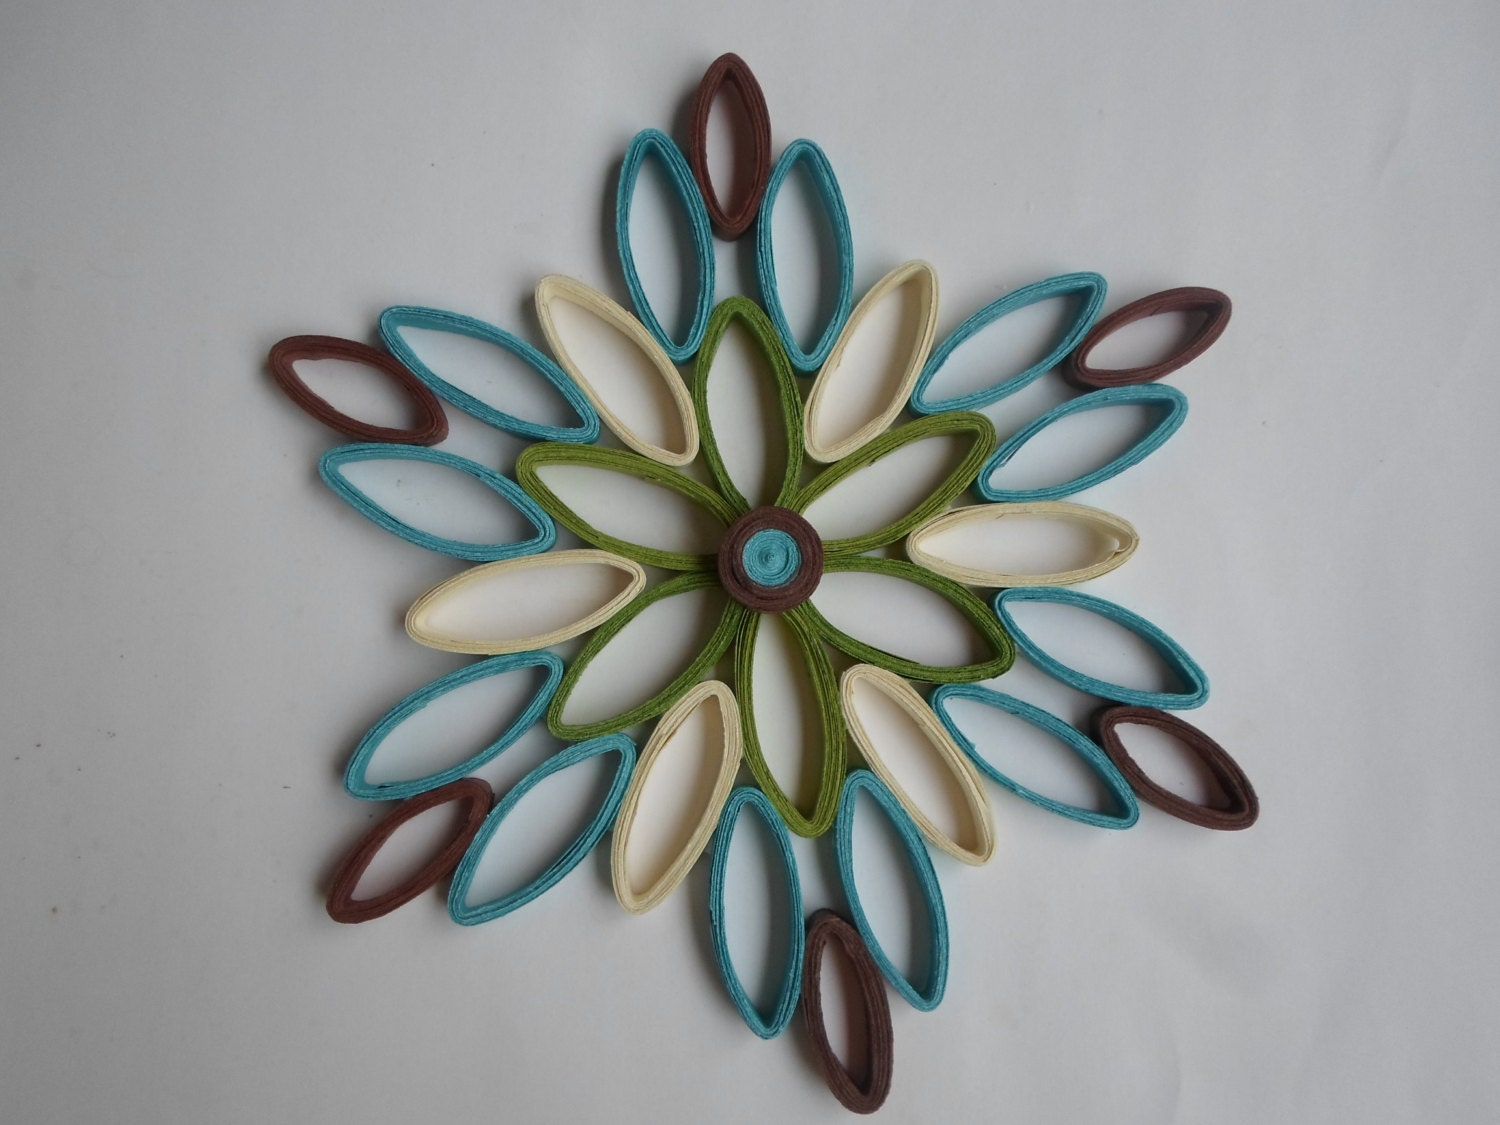 Turquoise wall hanging modern wall decor paper wall art for Contemporary decorative accessories